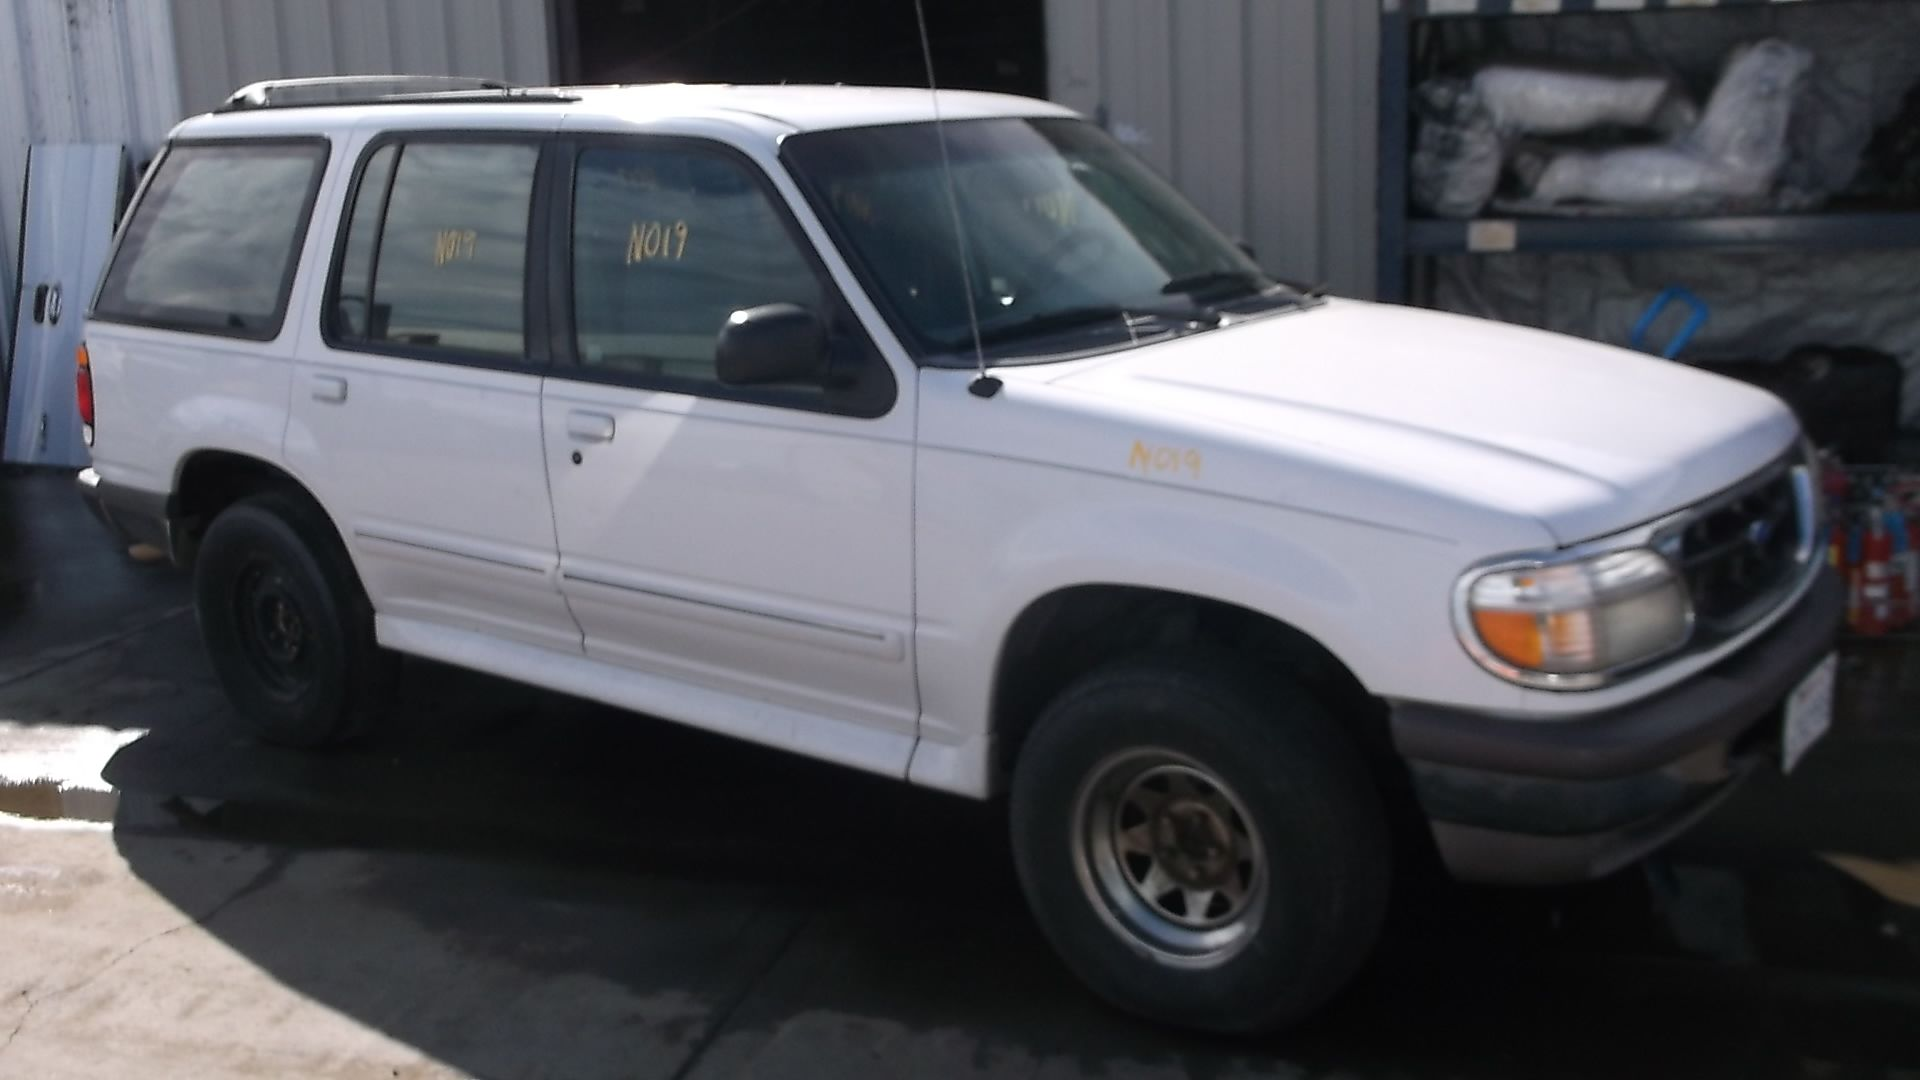 1997 Ford Explorer Xlt 4 Door 4wd 0l With 155k Miles